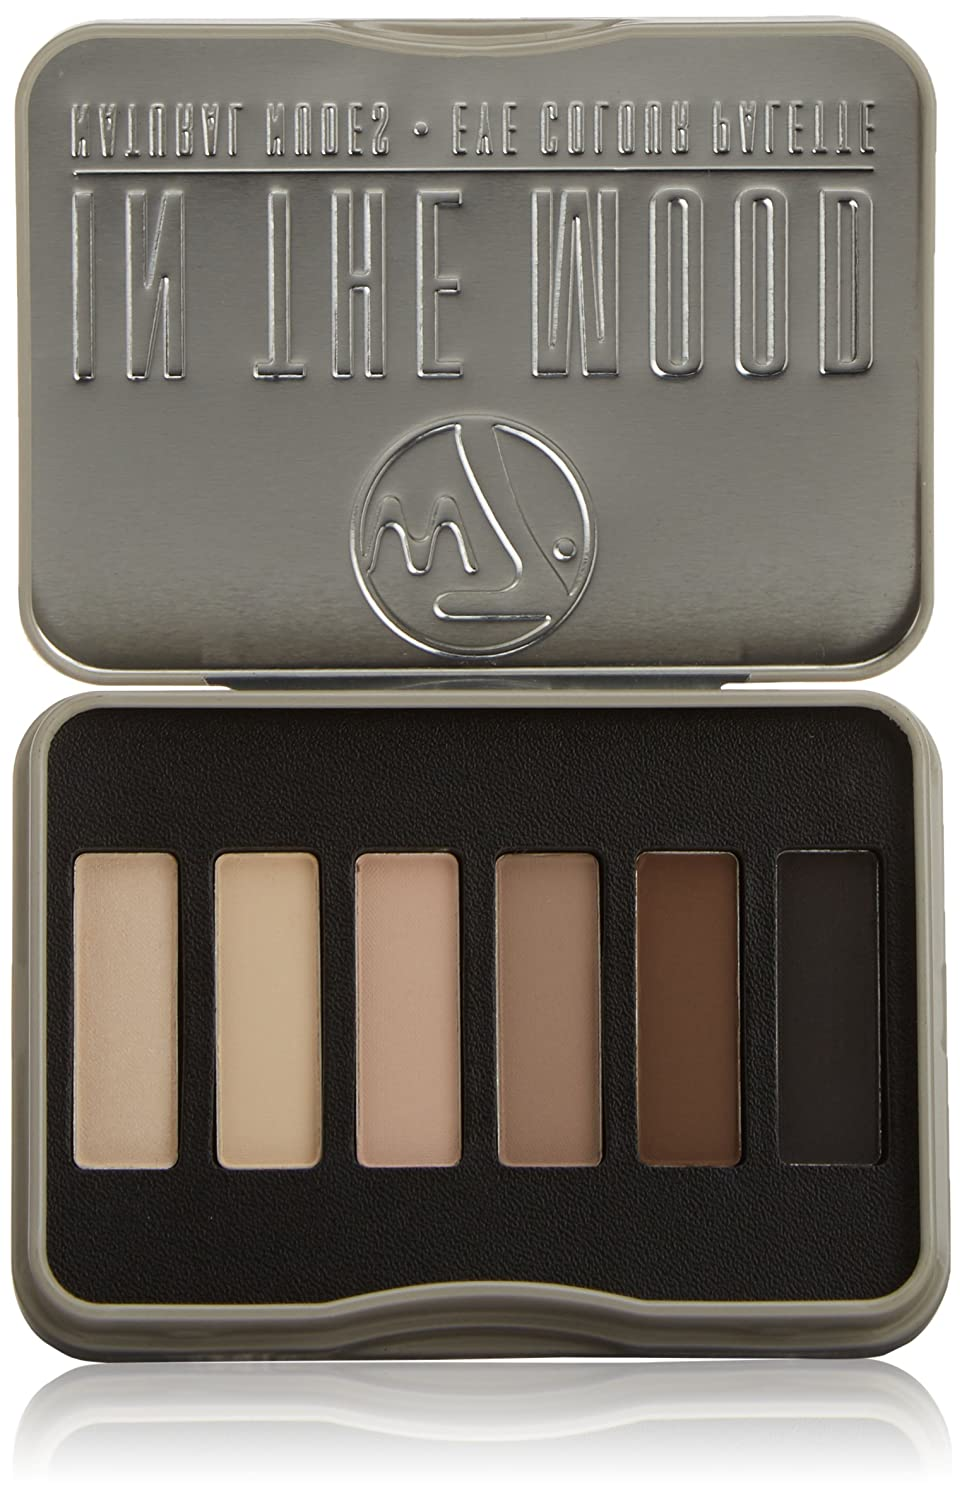 W7 Natural Nudes Eye Colour Palette 7 g, In The Mood - 6-Piece 5060406140347